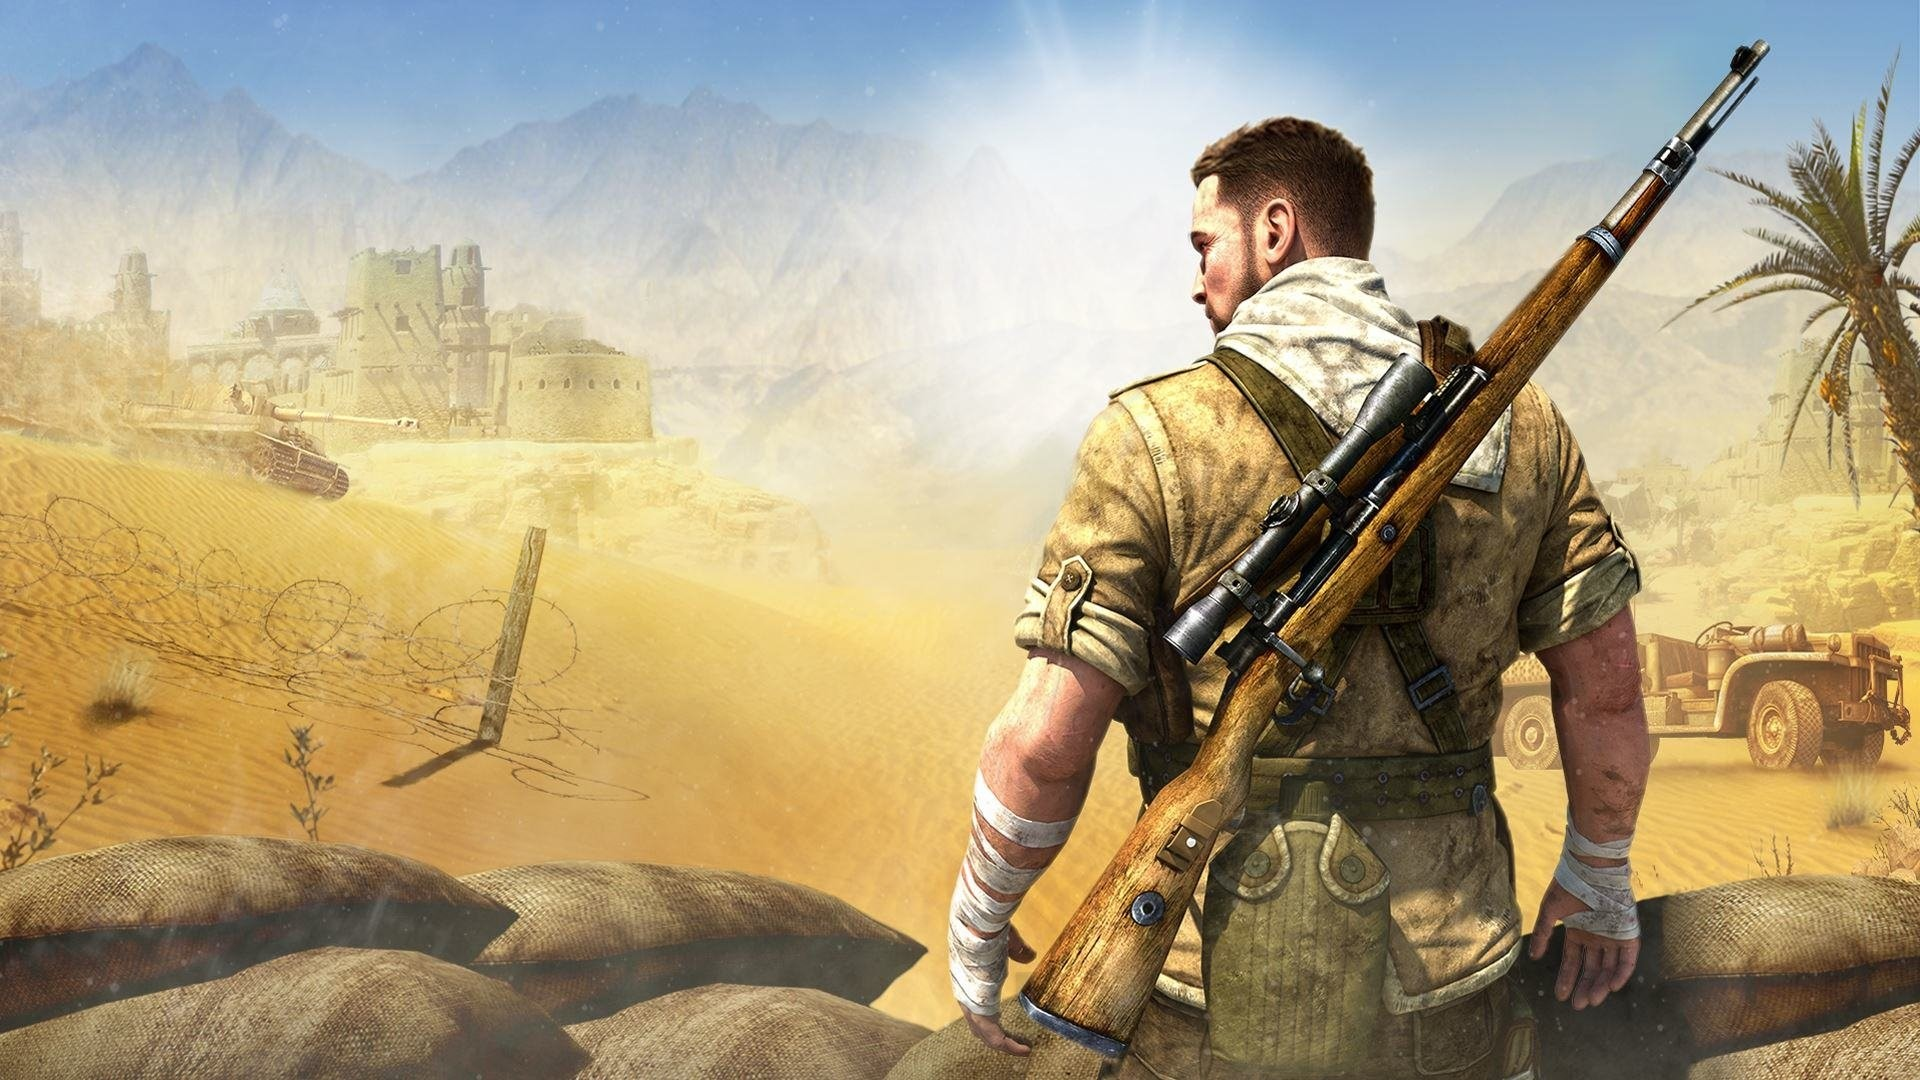 Sniper Elite Wallpapers 87 images 1920x1080